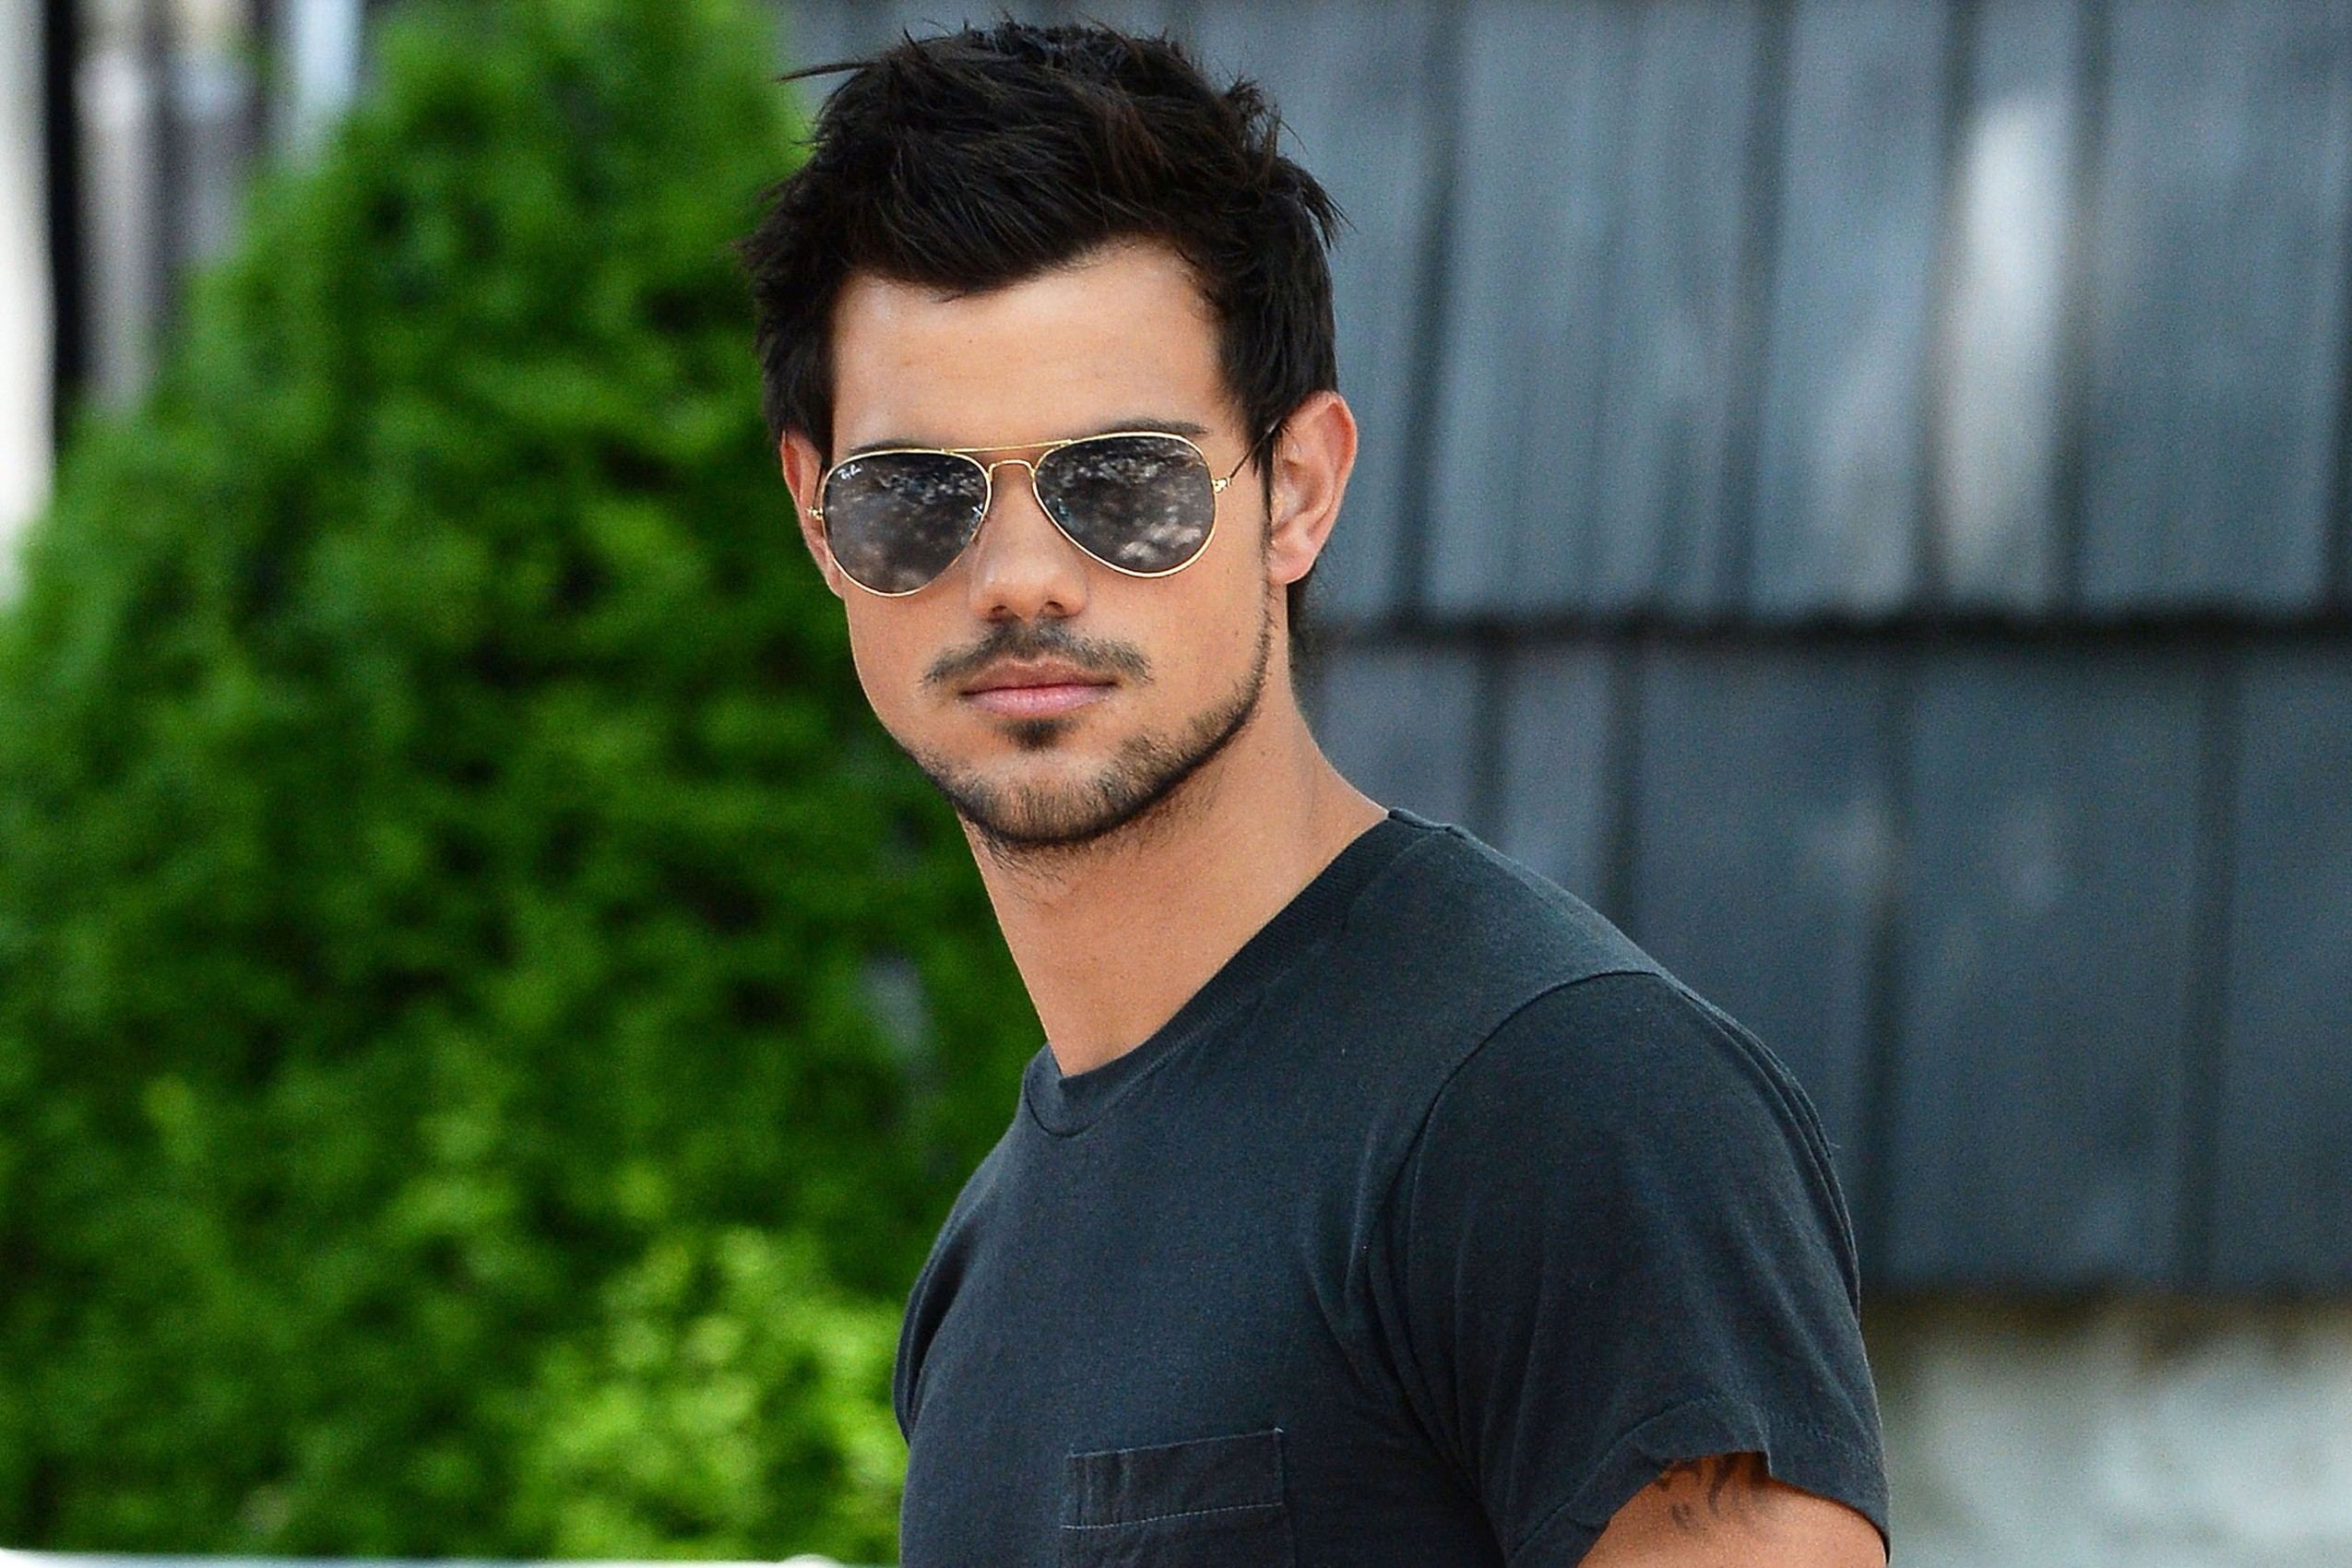 Taylor Lautner HD Wallpapers for desktop download Taylor Lautner